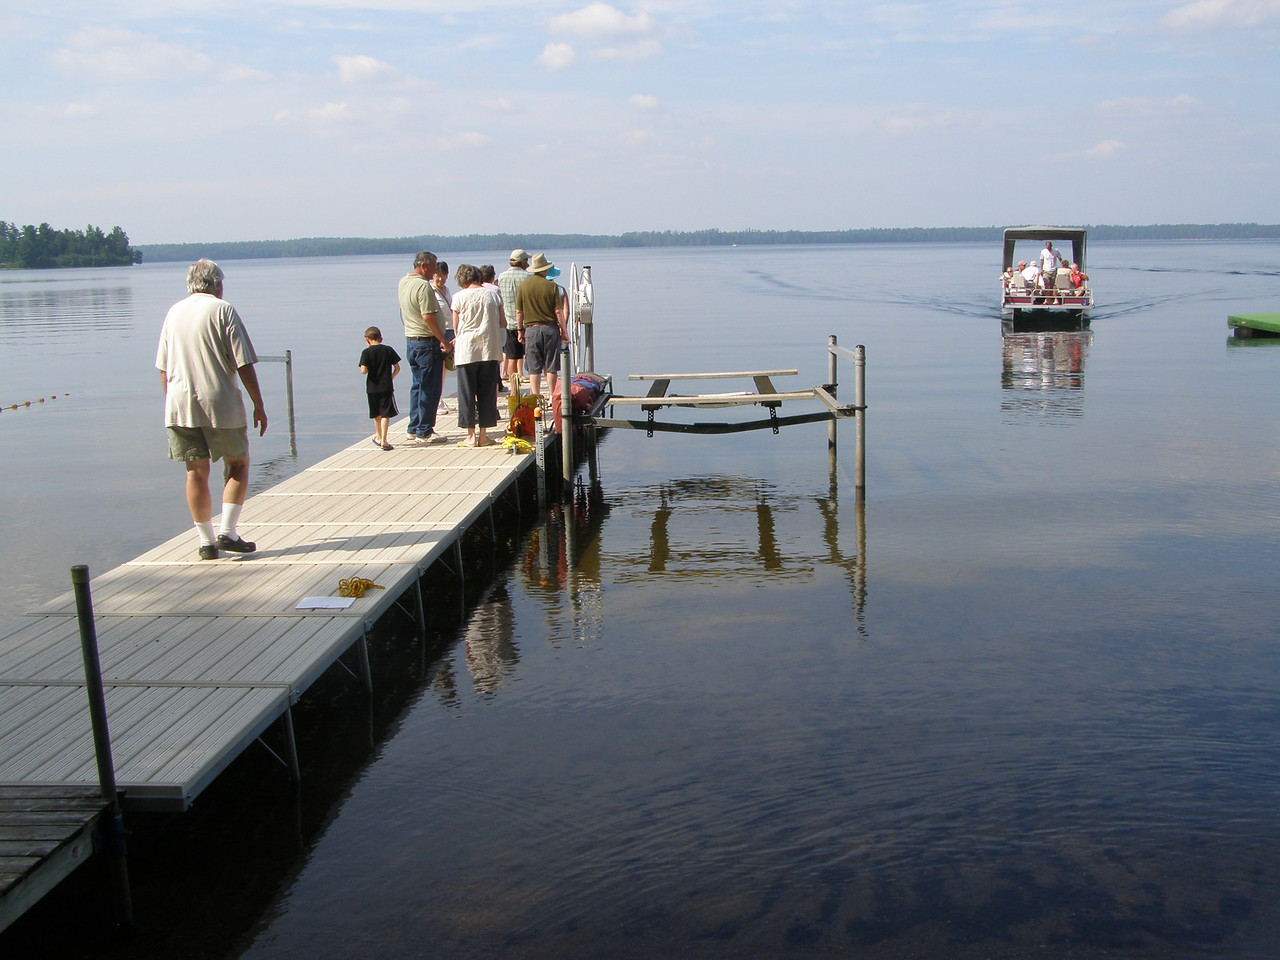 """As a boat returns from it's """"limno"""" expedition on the lake, visitors line up for the next departure."""